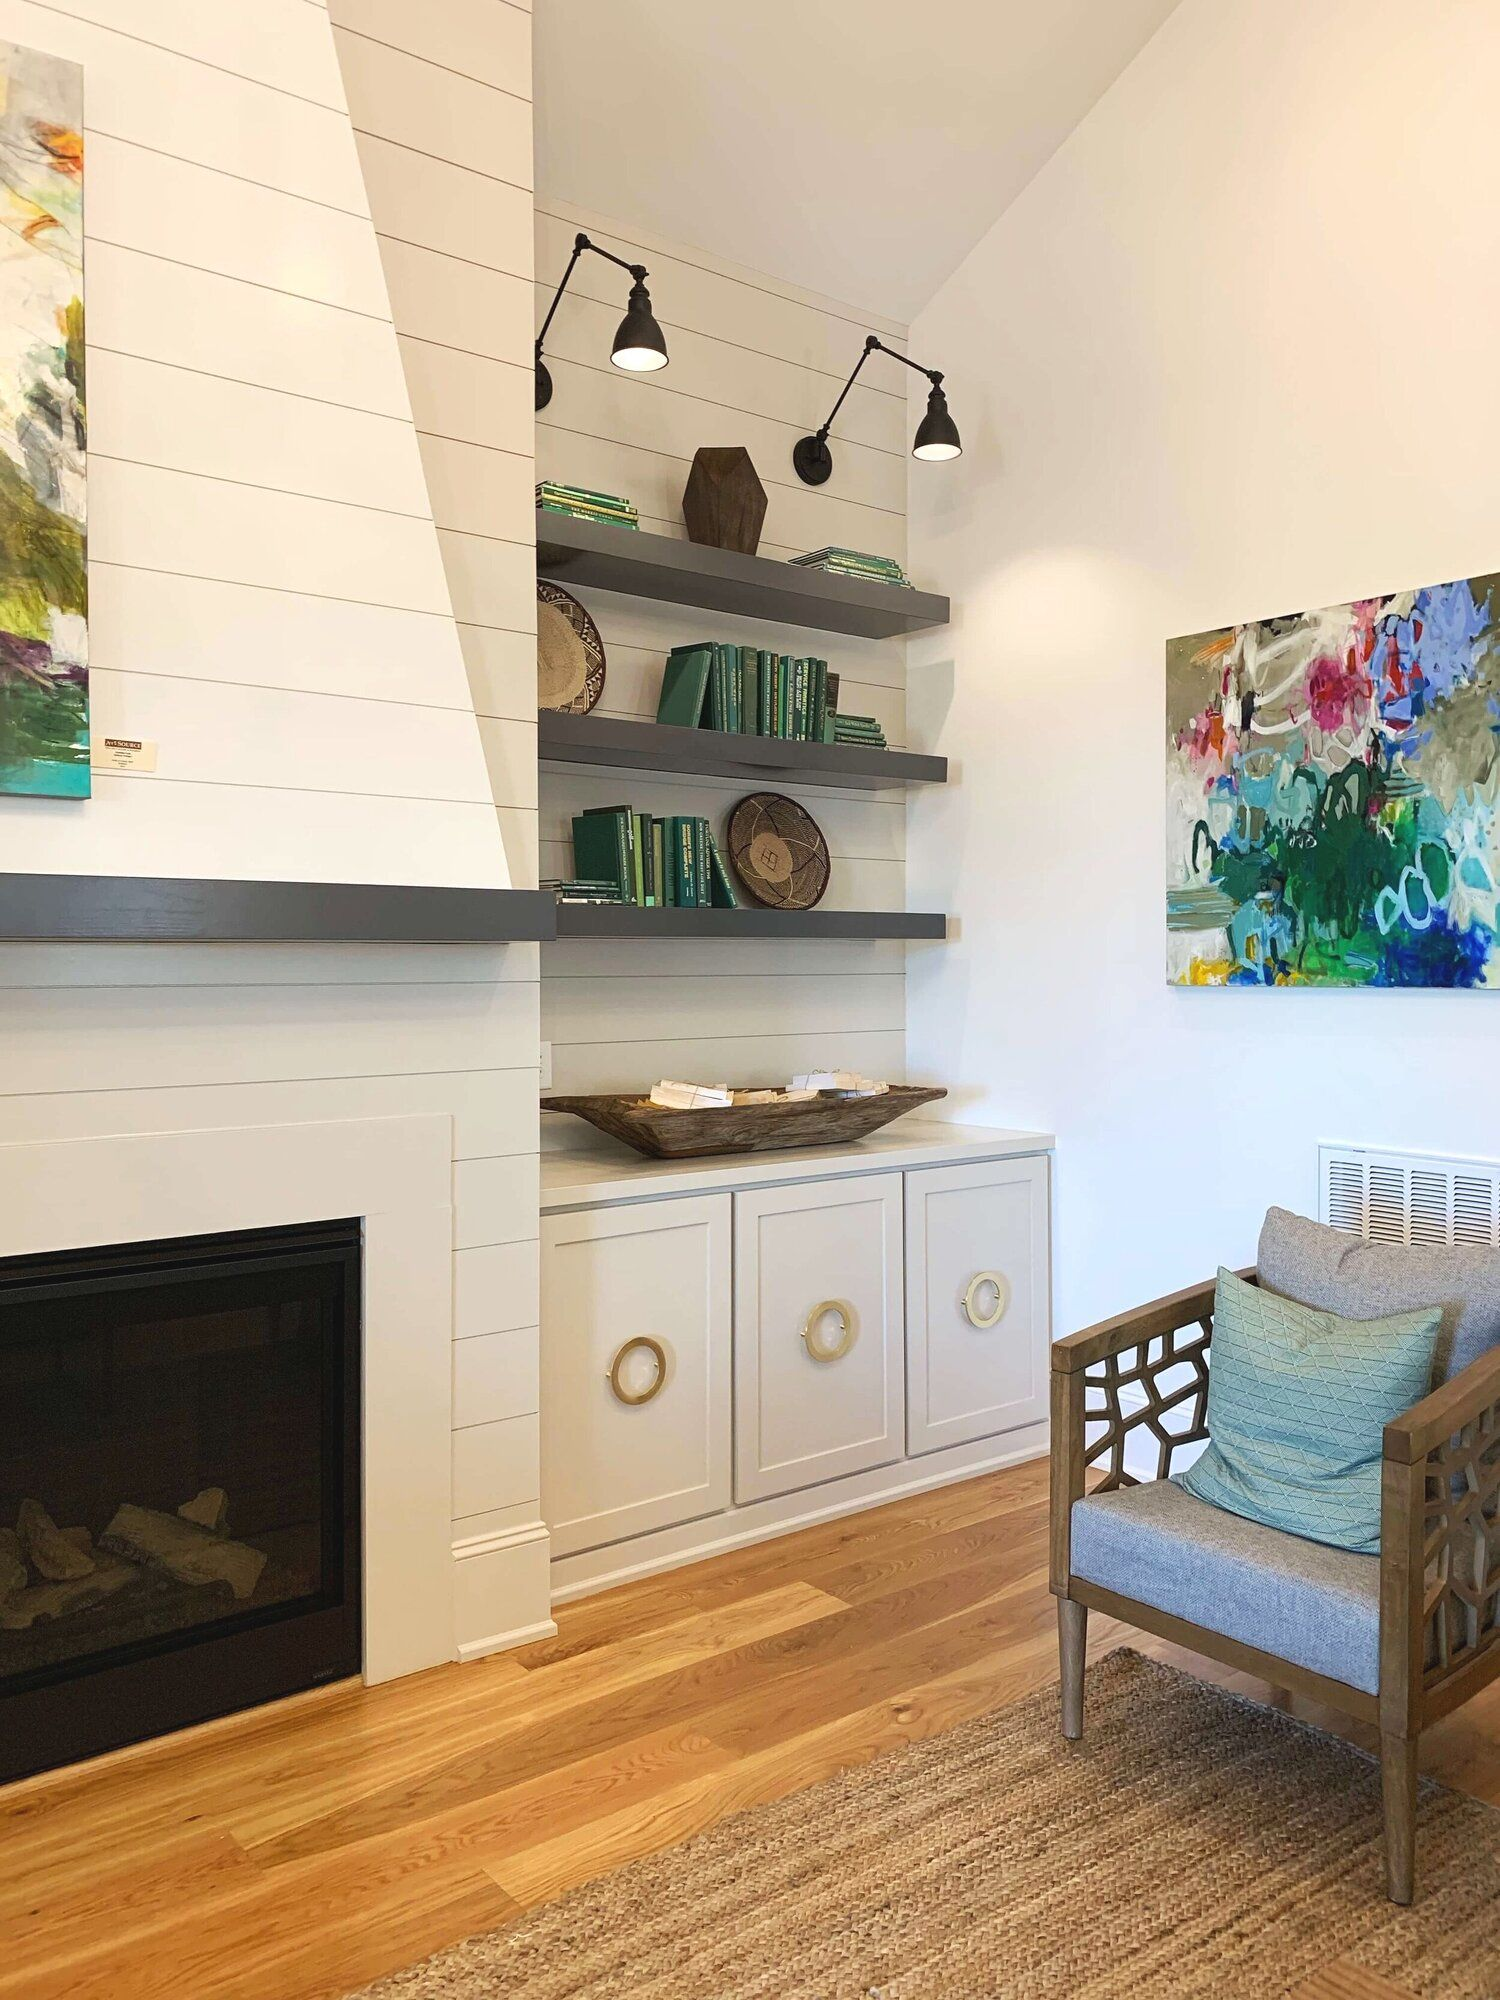 Model Home Ideas - the last batch of ideas for 2019! Those light fixtures are just fun - and they're adjustable! This makes them more useful over the years and you change out what you're displaying on your shelves. The cabinet hardware is big, bold and beautiful!